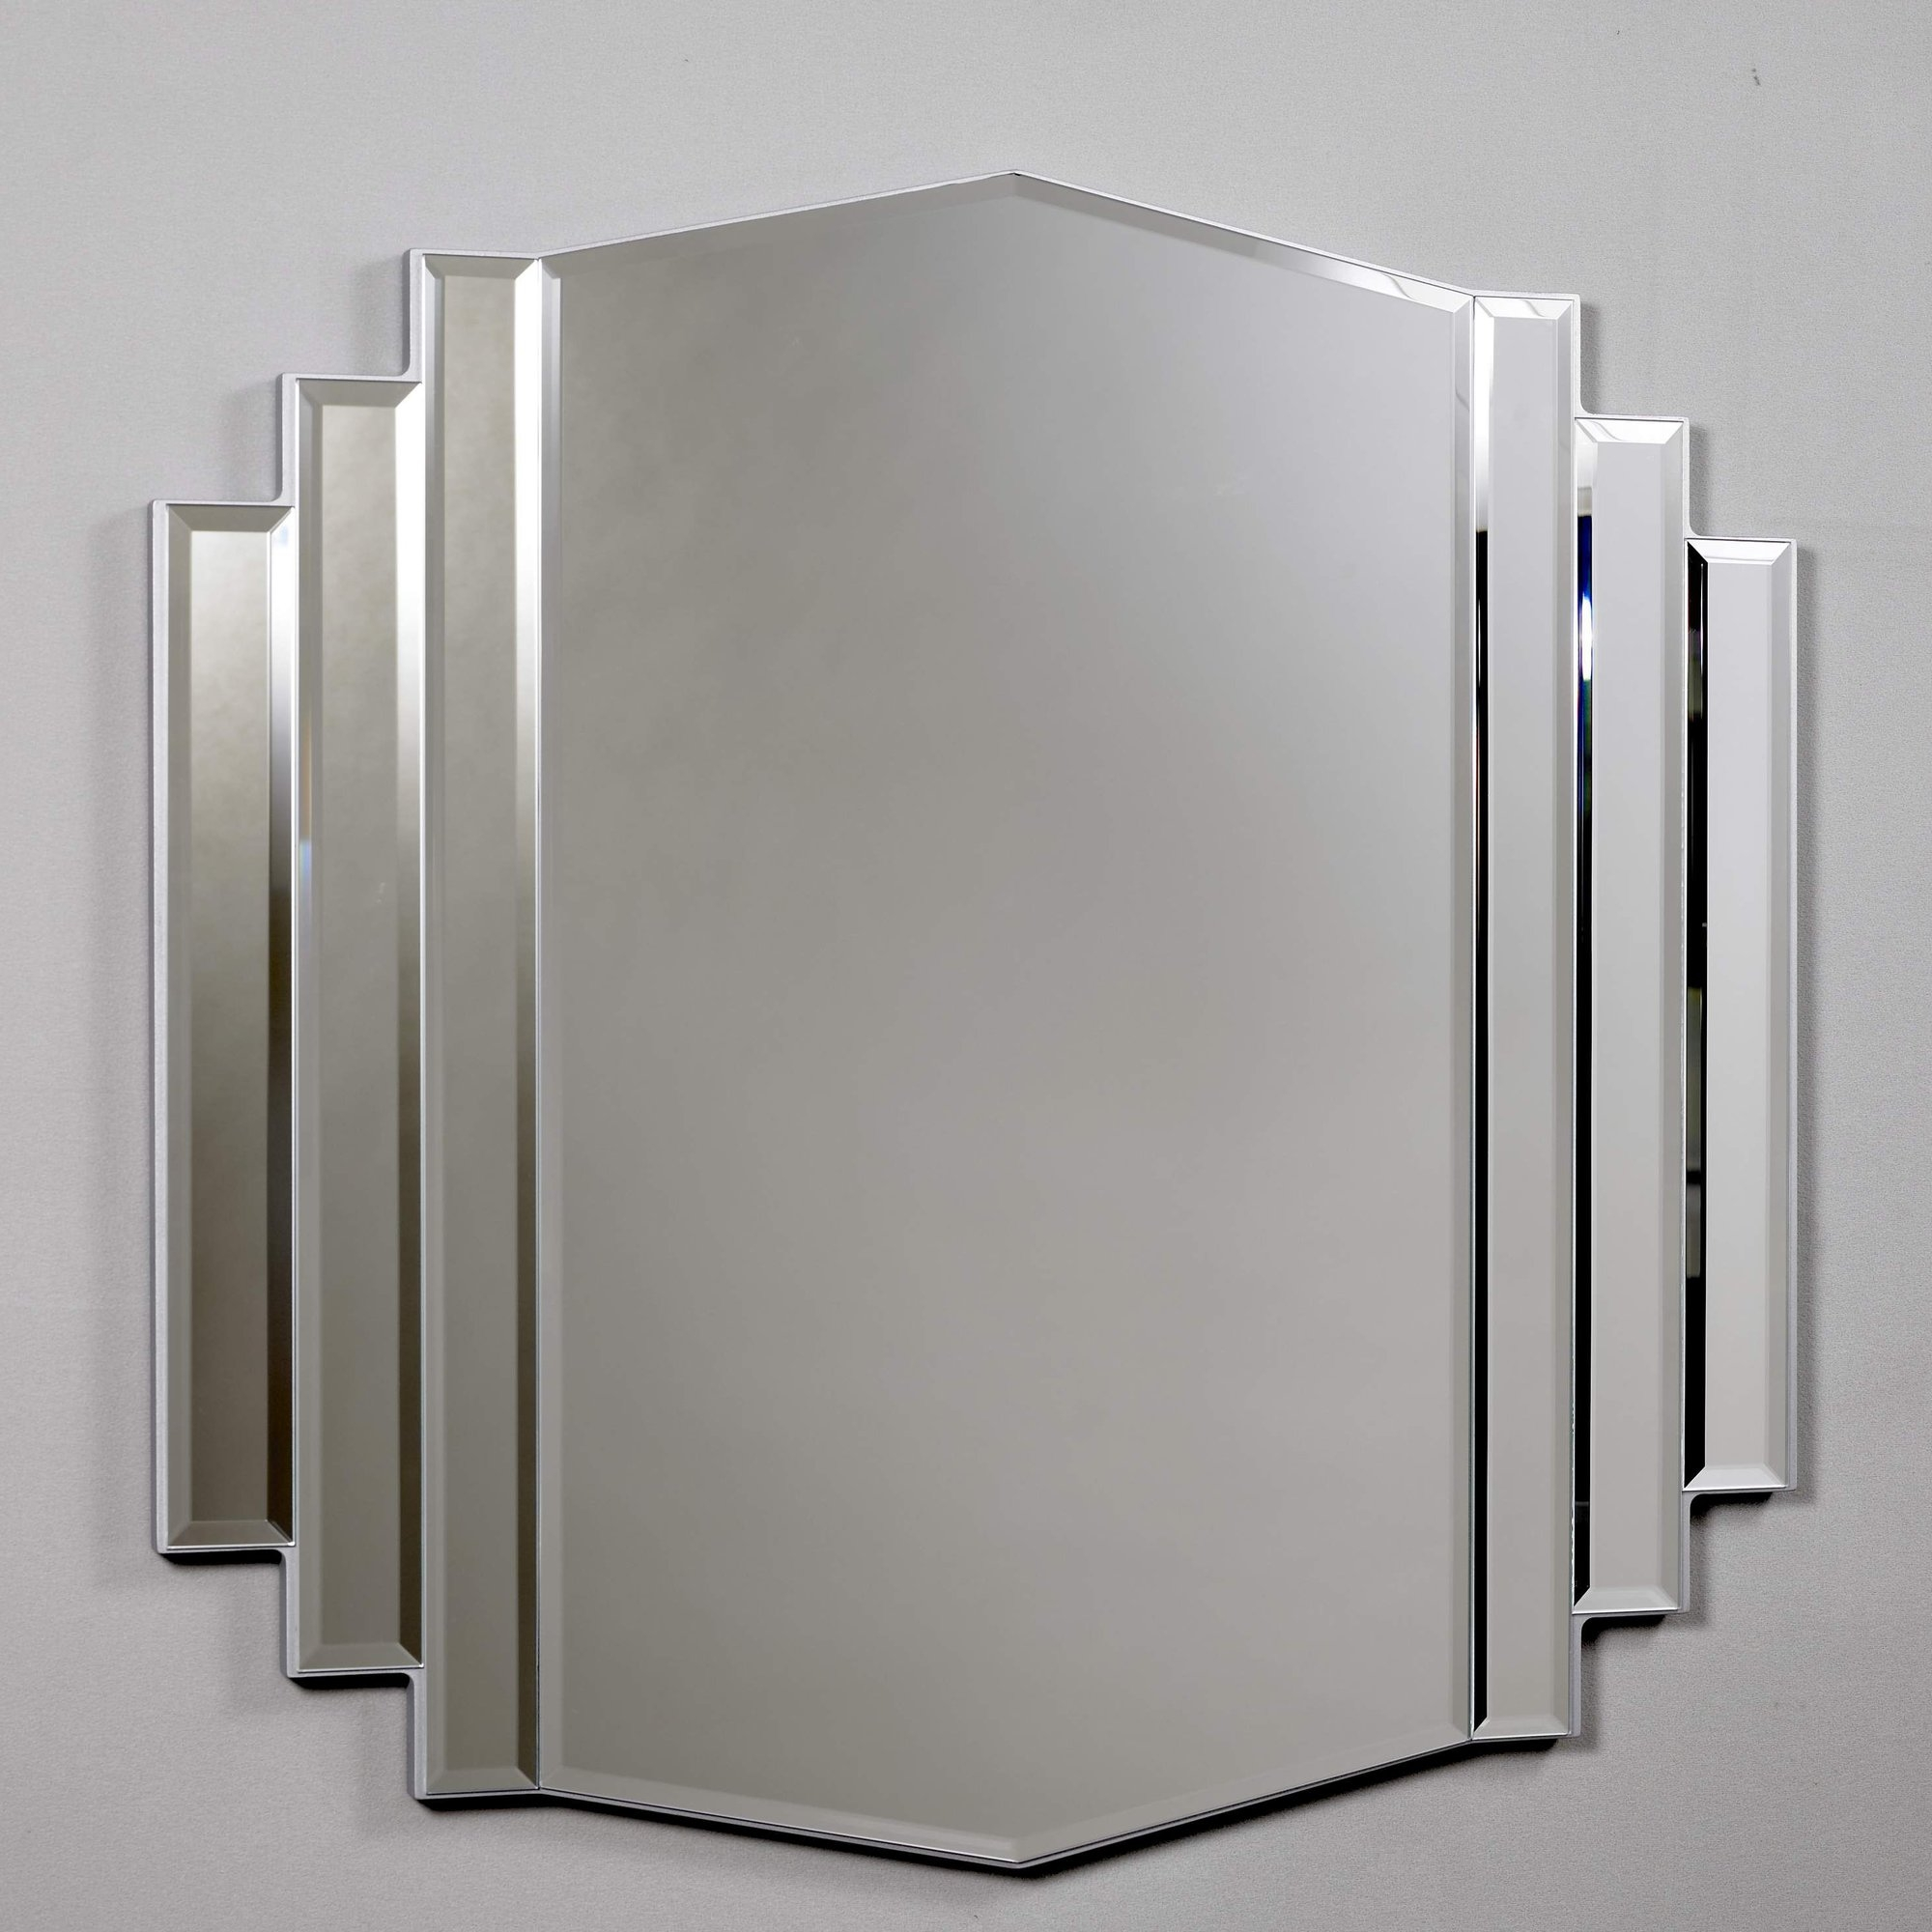 Morris Mirrors Ltd Art Deco Design Mirror Reviews Wayfaircouk Pertaining To Deco Mirror (Image 13 of 15)